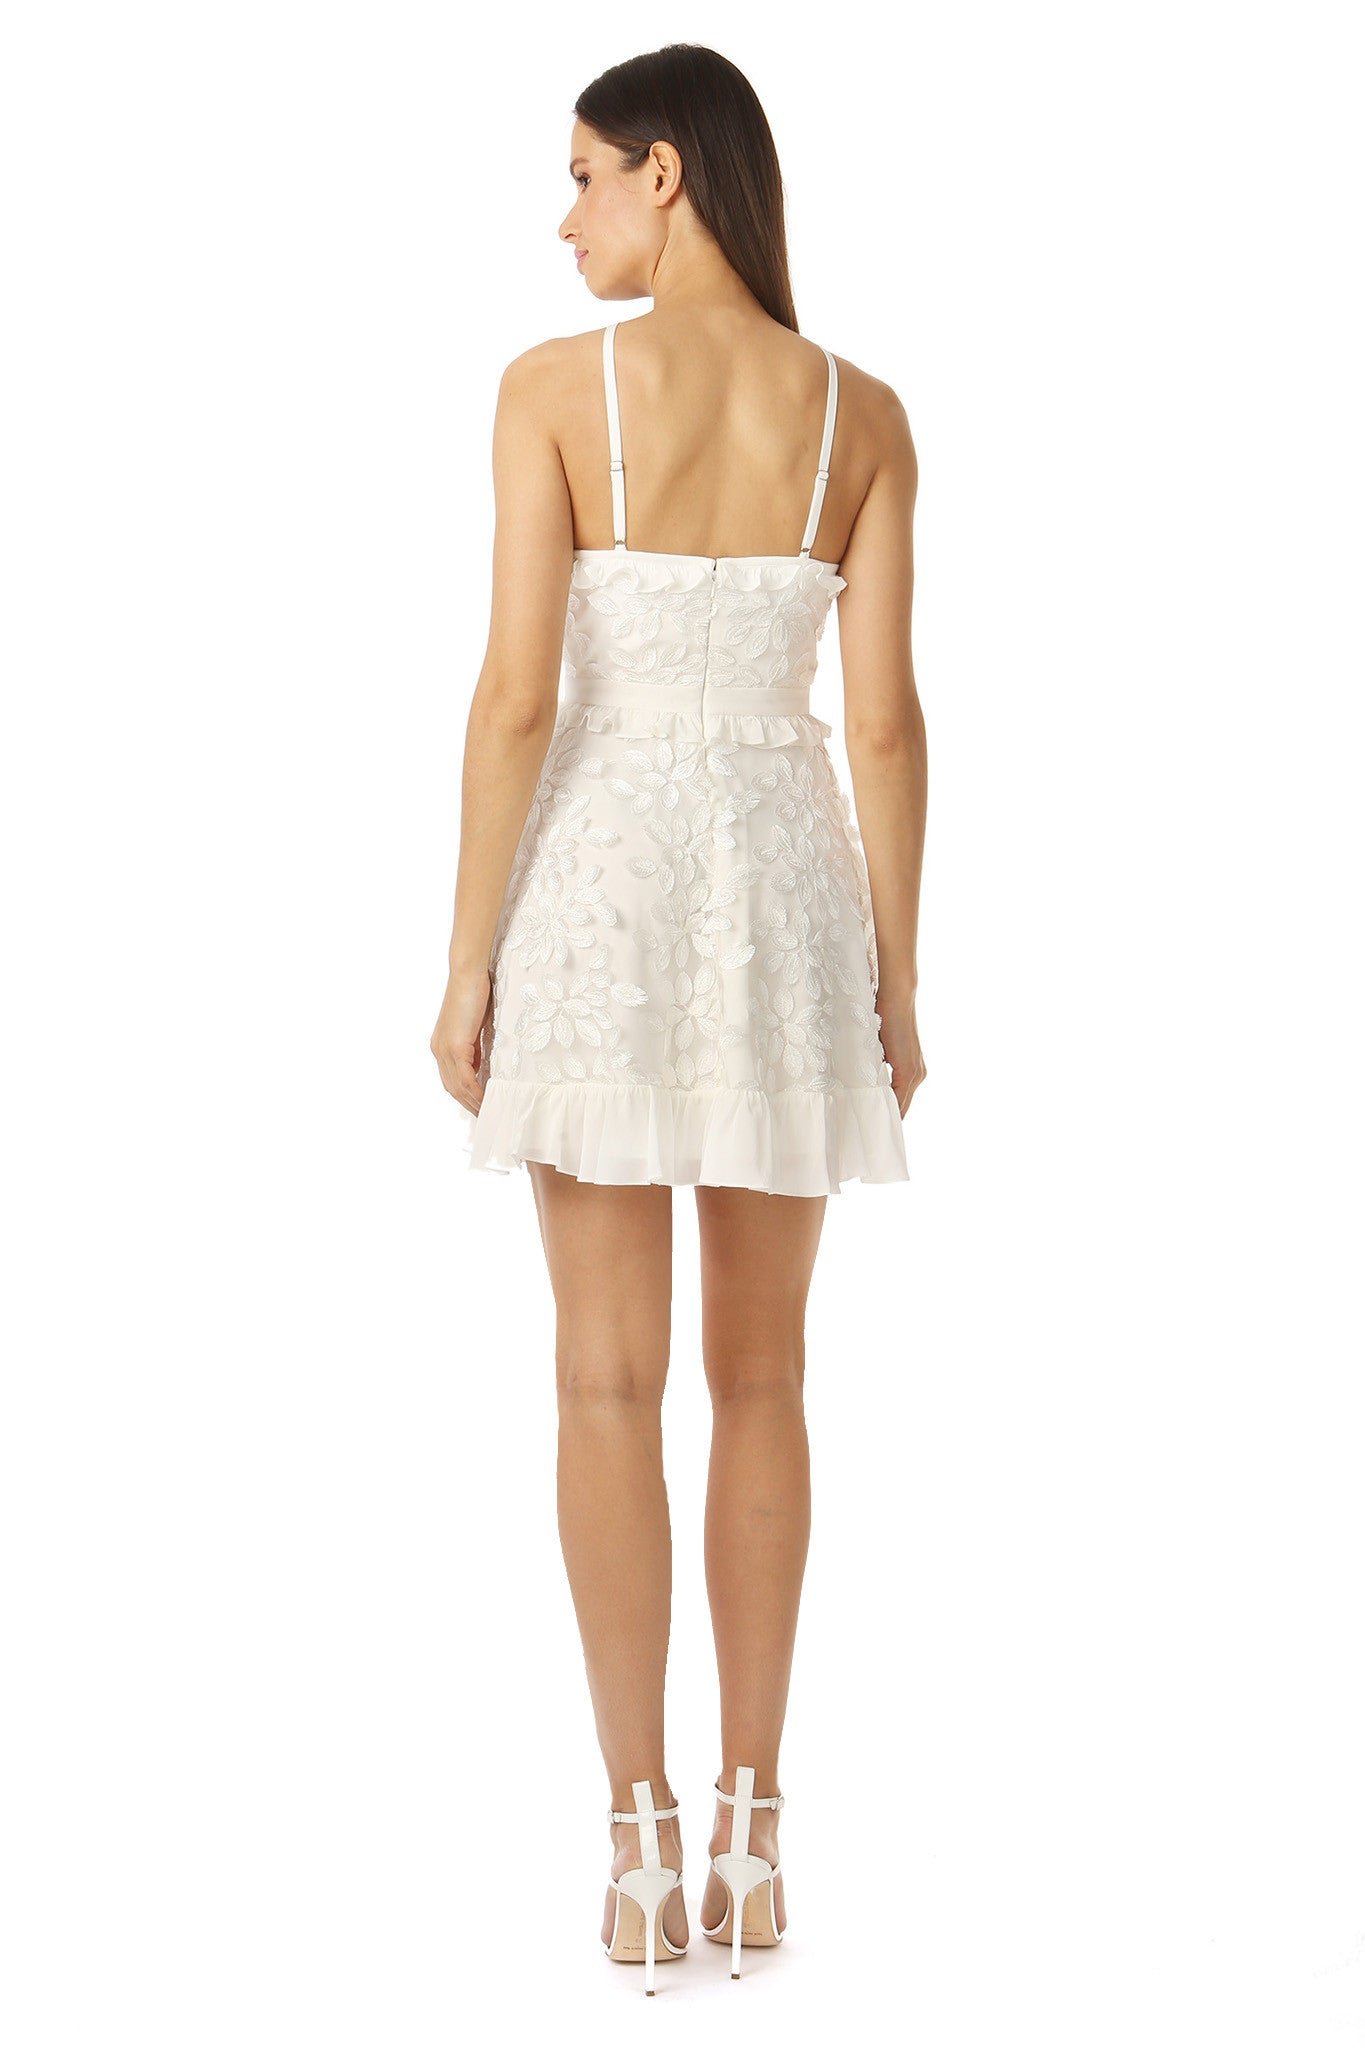 Jay Godfrey White Floral Midi Dress - Back View